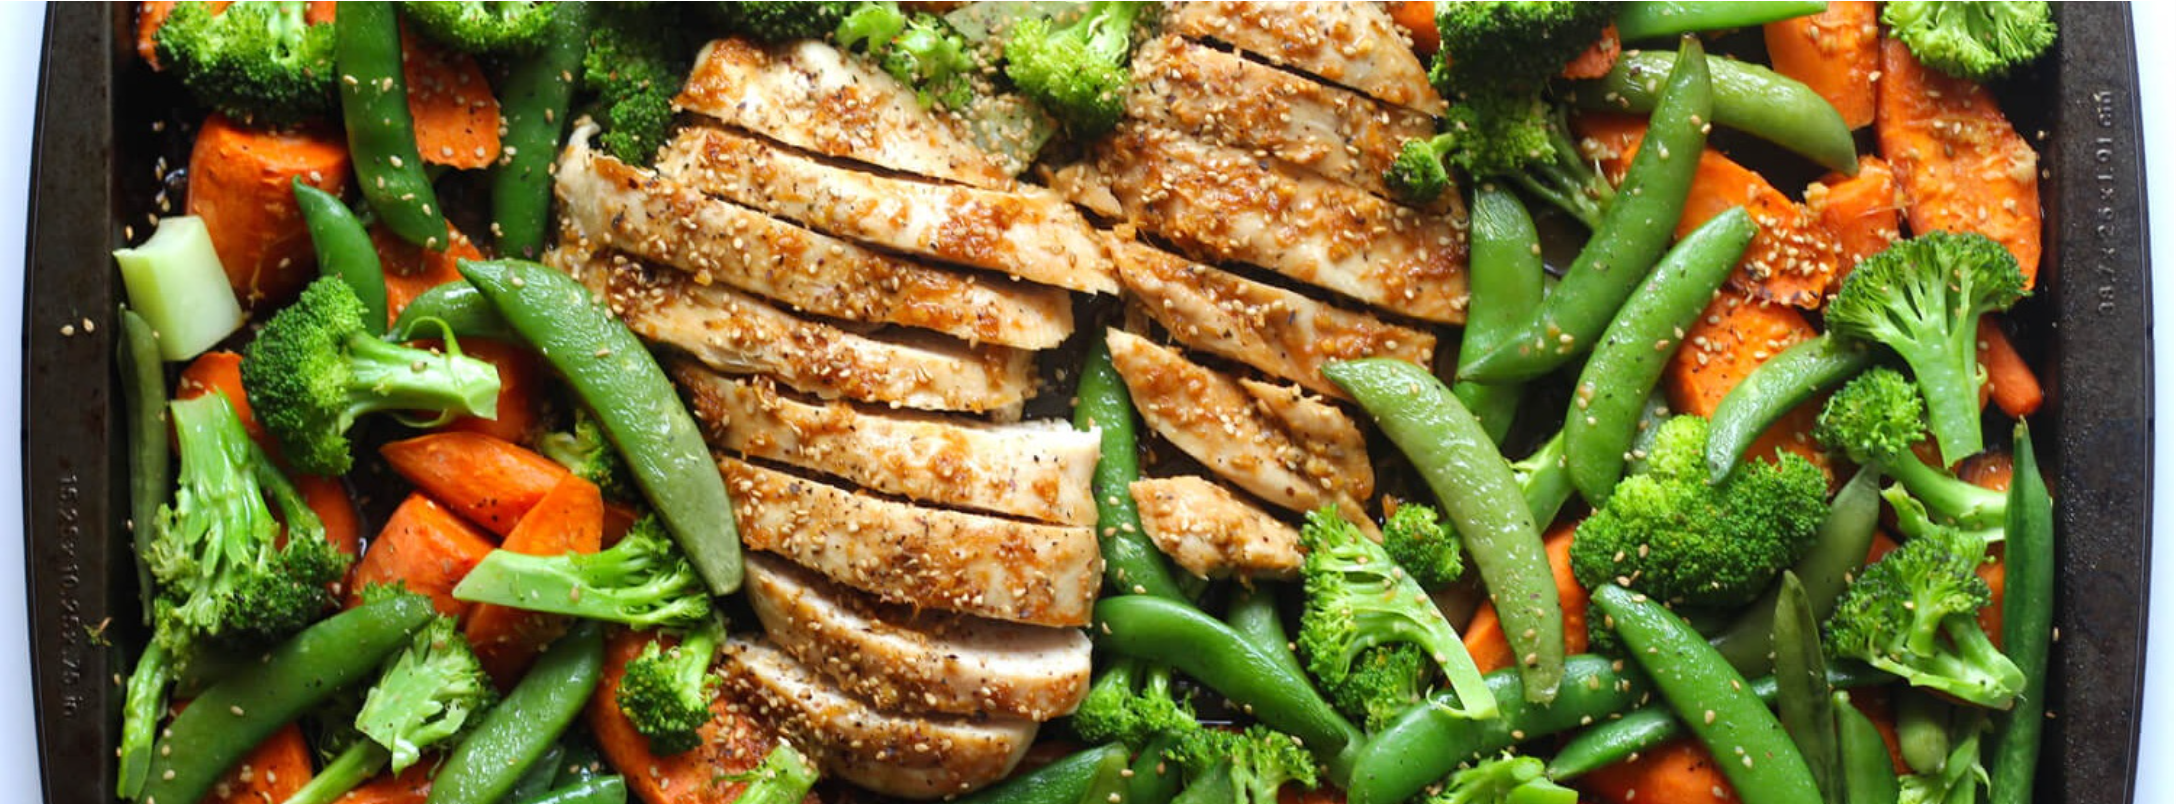 chicken one pan terriyaki.jpg